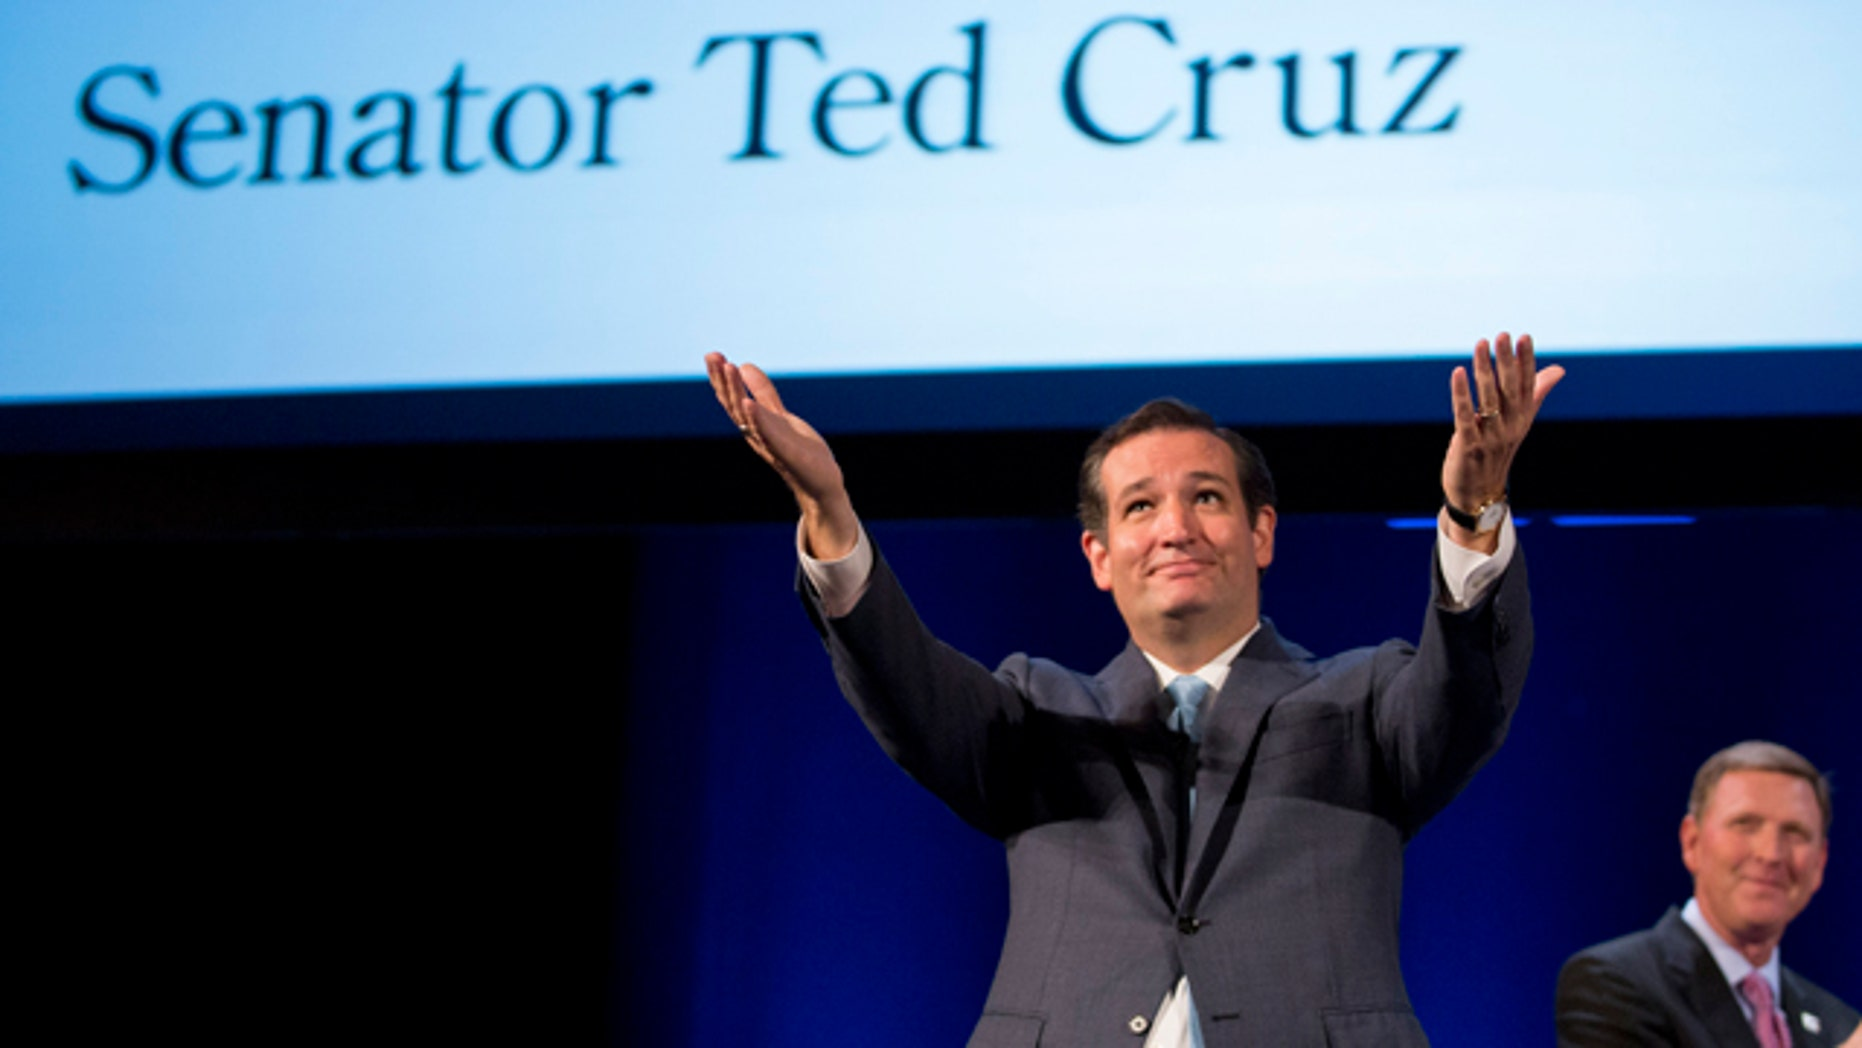 Aug. 10, 2013: Sen. Ted Cruz speaks during the family leadership summit in Ames, Iowa.